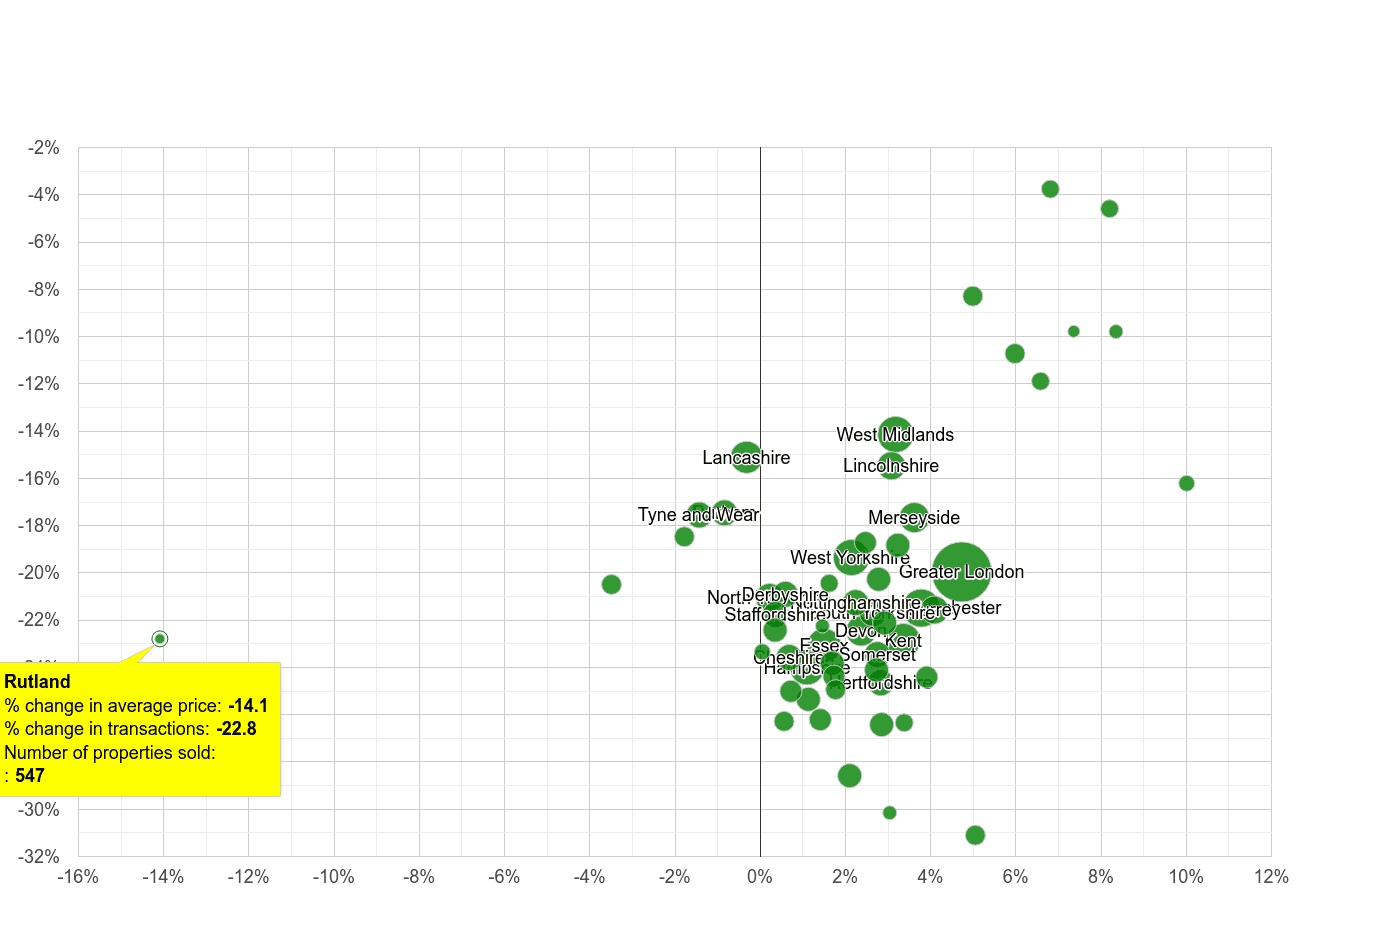 Rutland property price and sales volume change relative to other counties